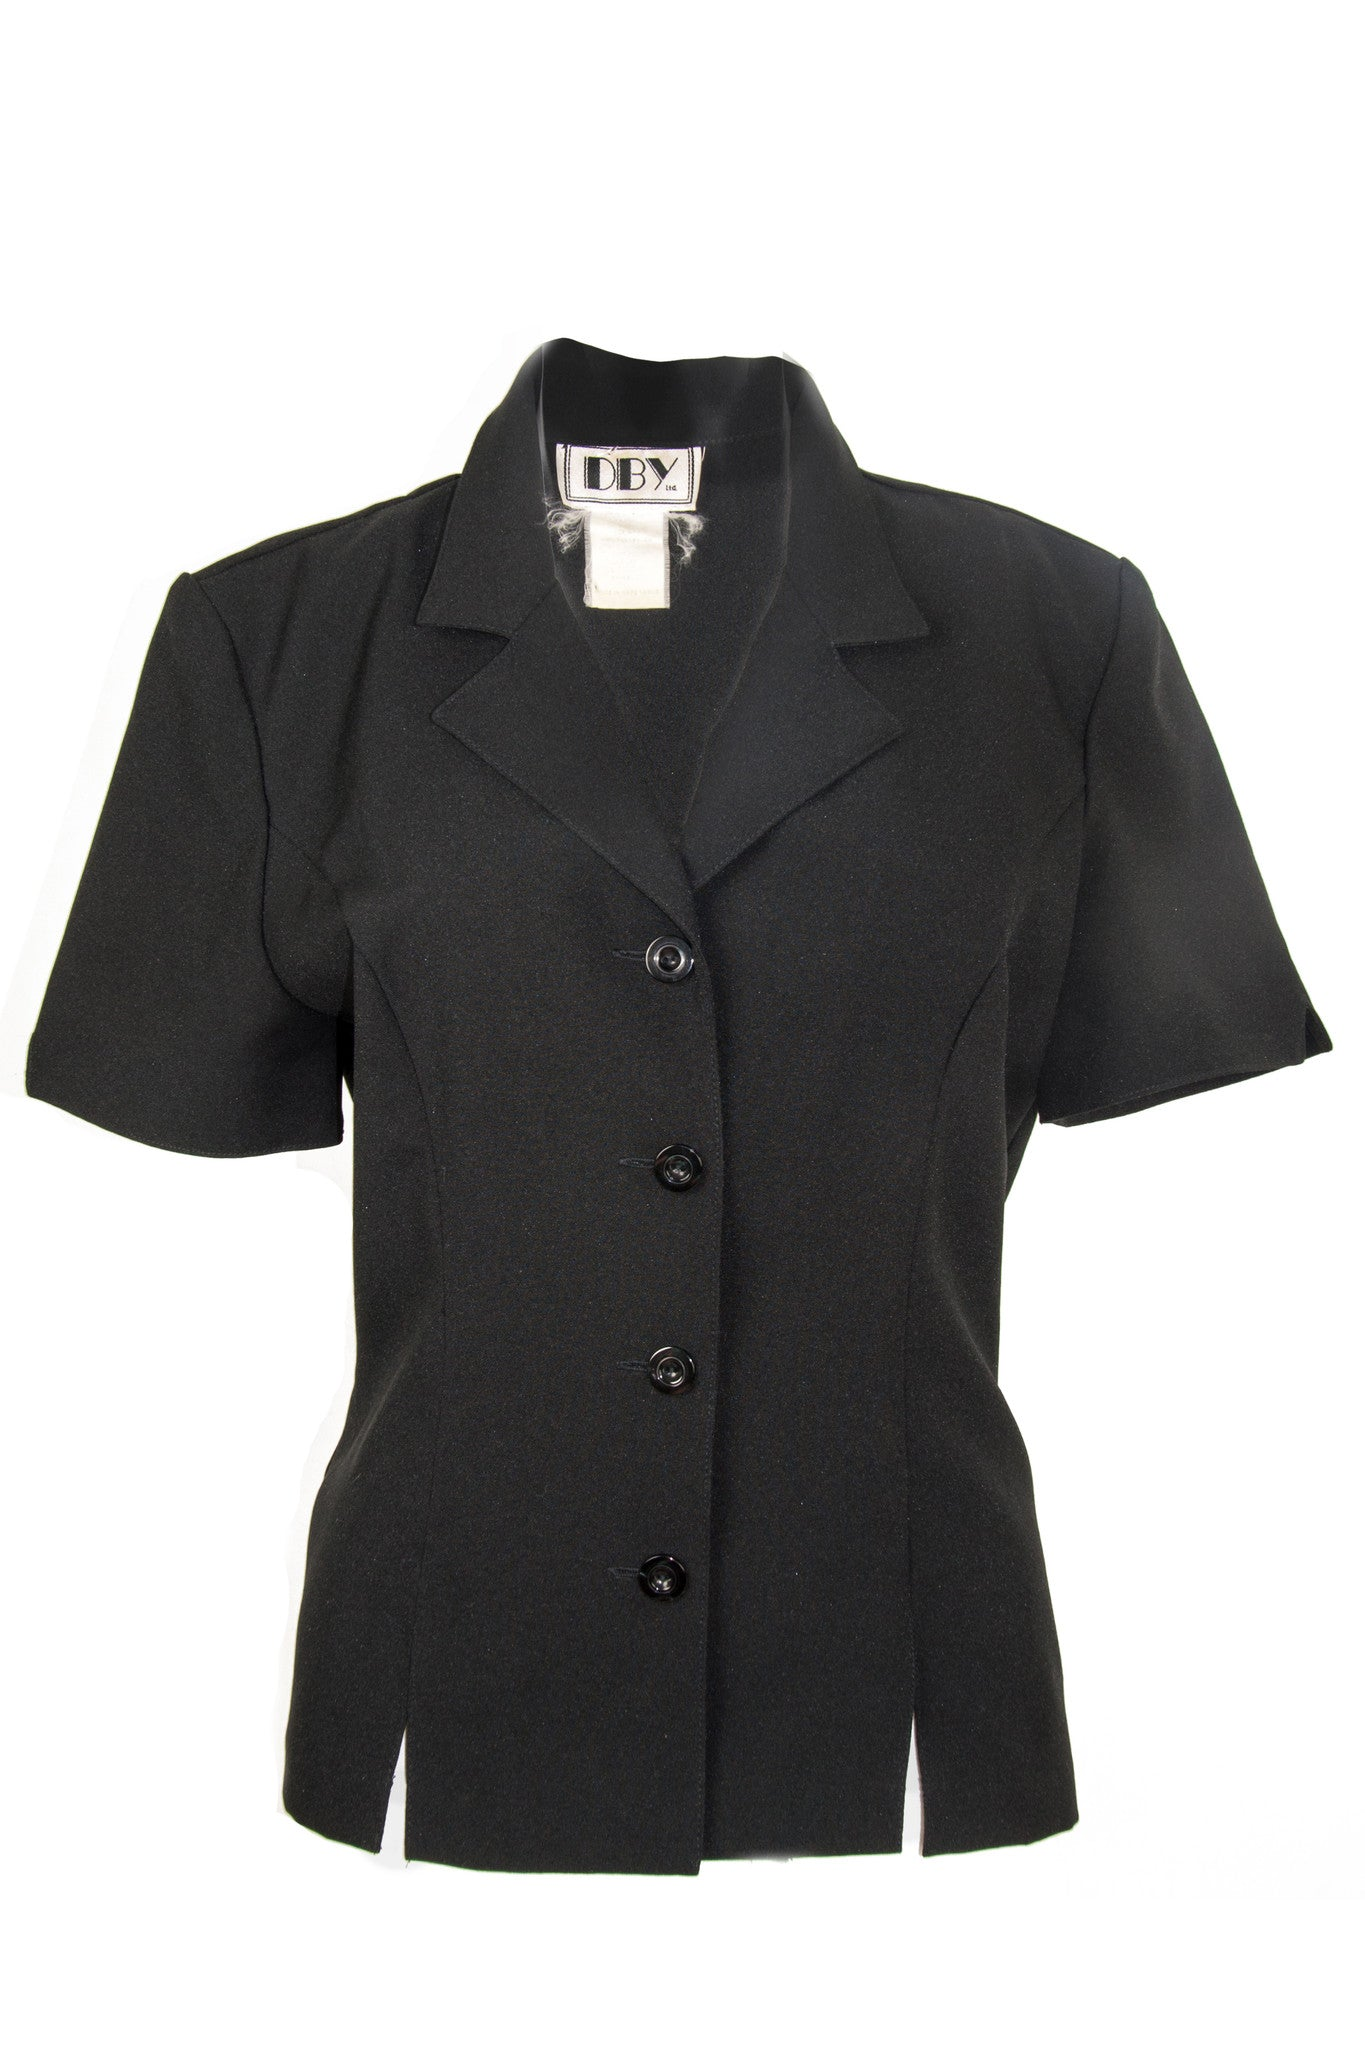 Vintage black shirt featuring peaked lapel collar, front button closure, short sleeves, and cutouts at front and back hem.